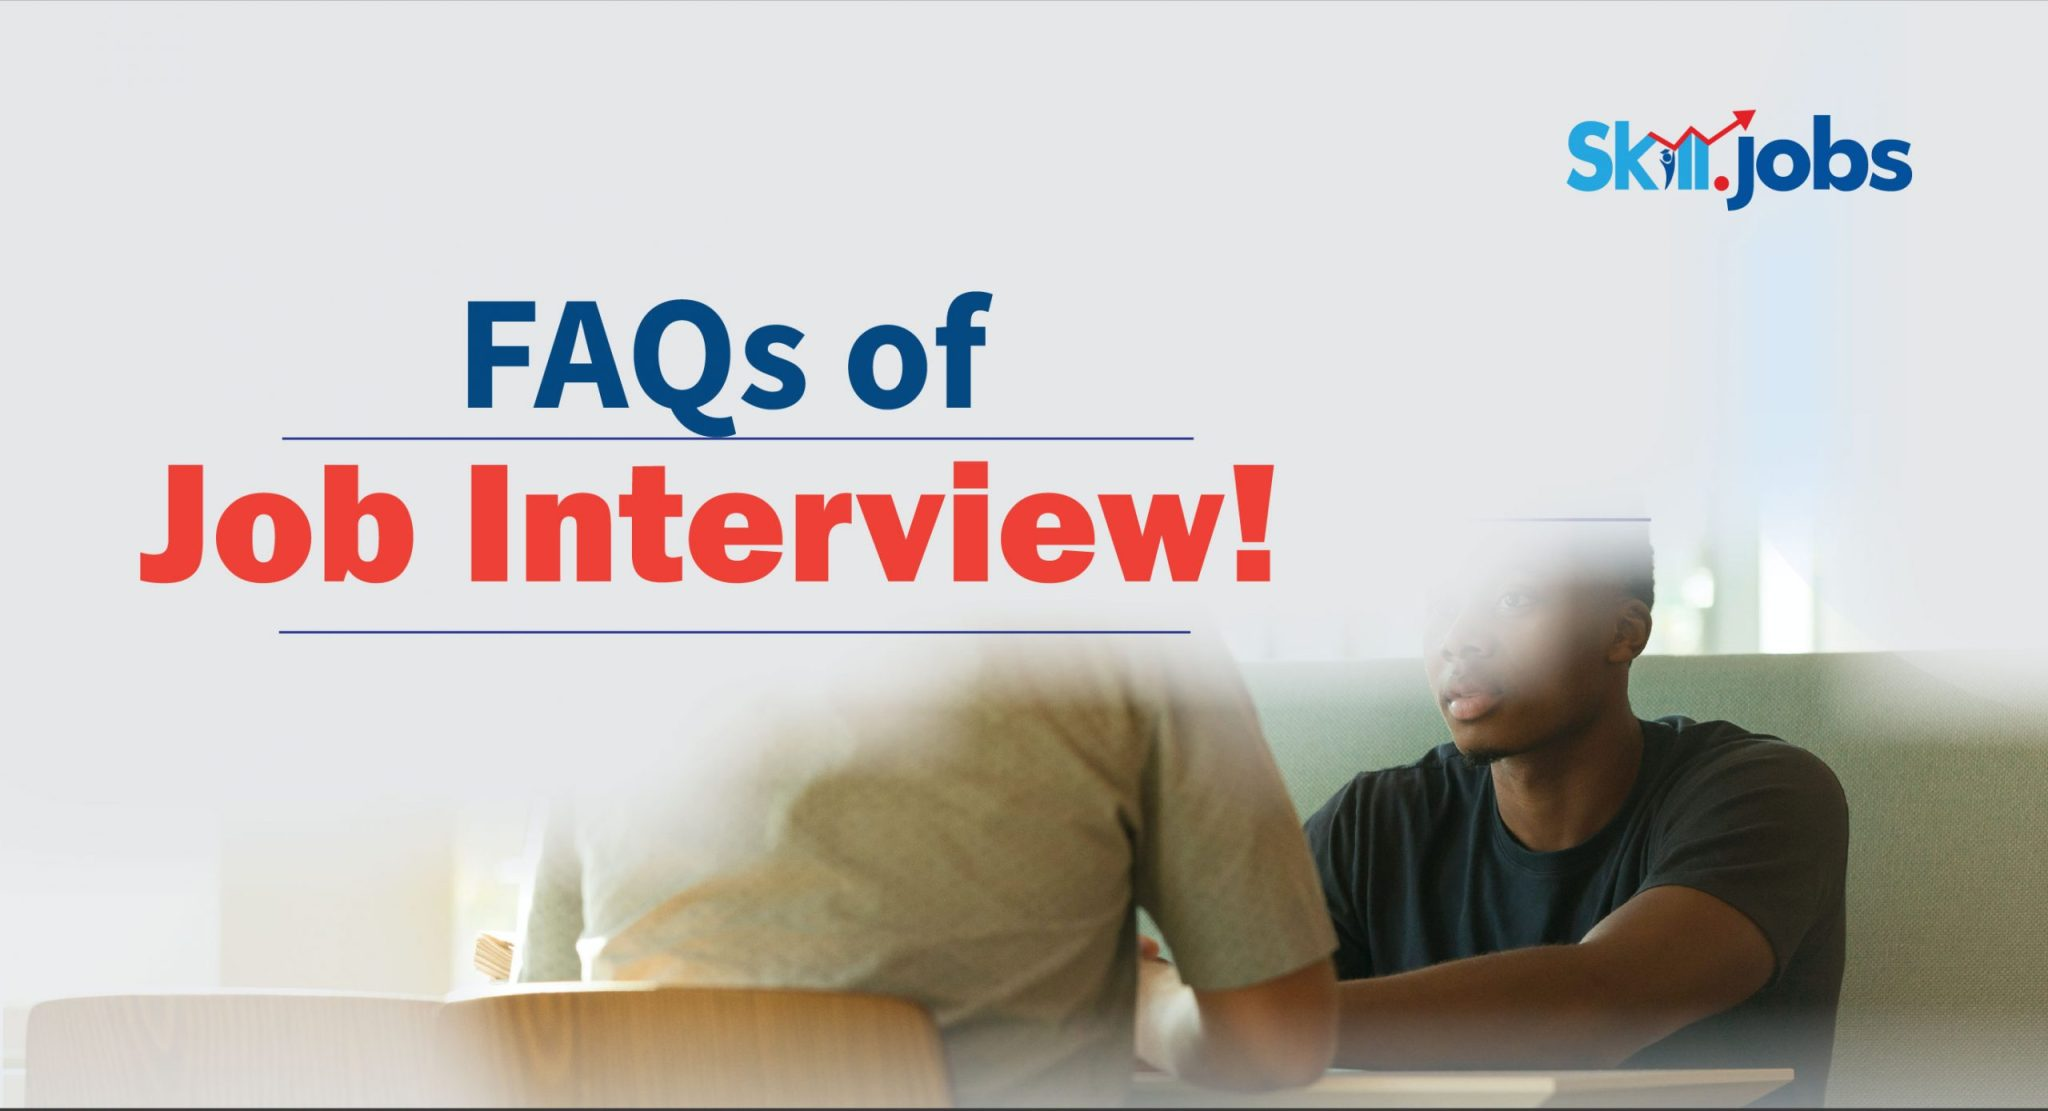 FAQs of Job Interview!